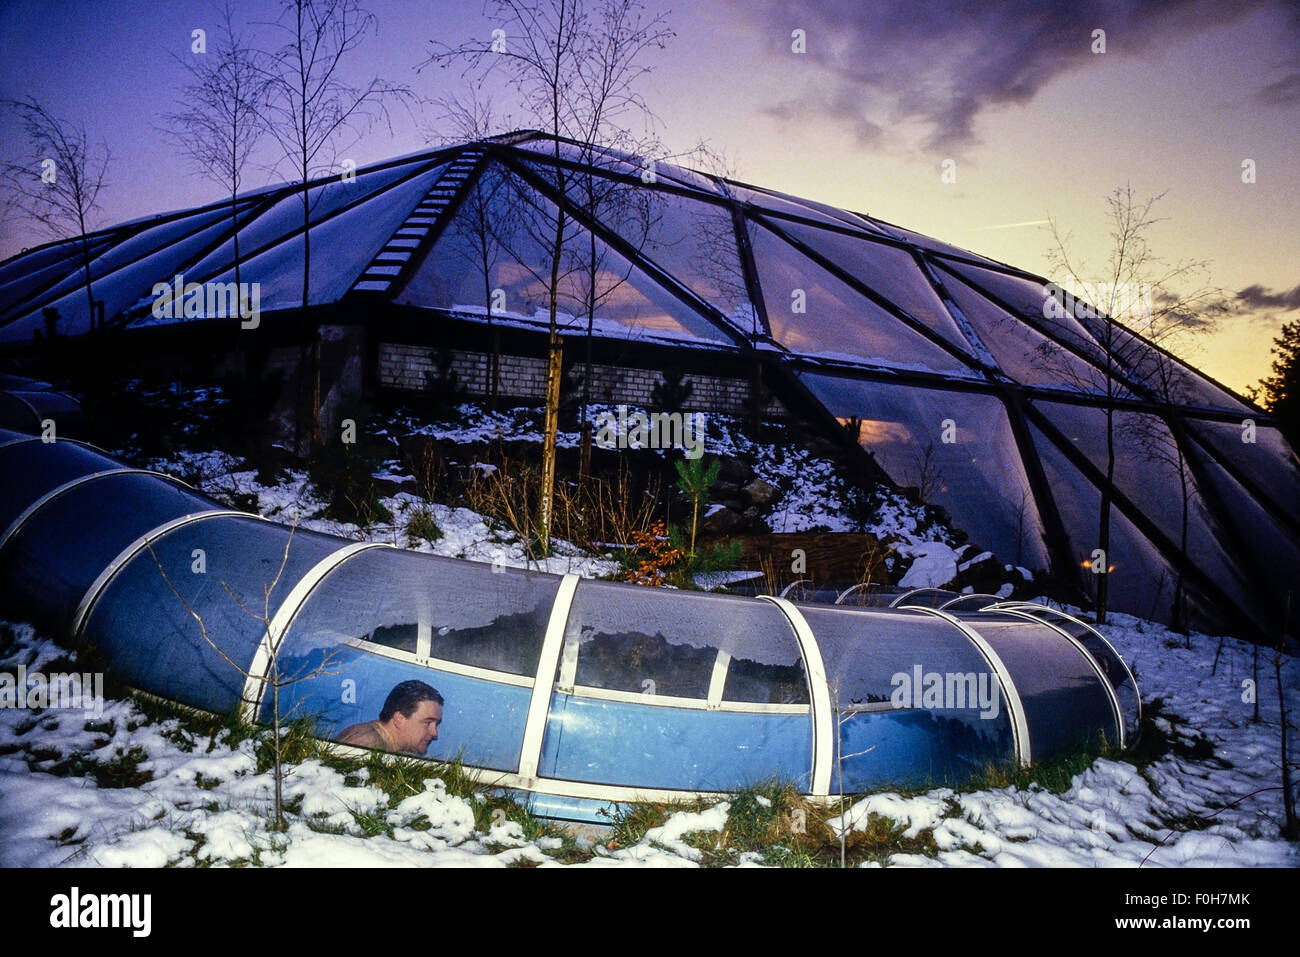 Subtropical Swimming Paradise Sherwood Forest Center Parcs Stock Photo 86431091 Alamy